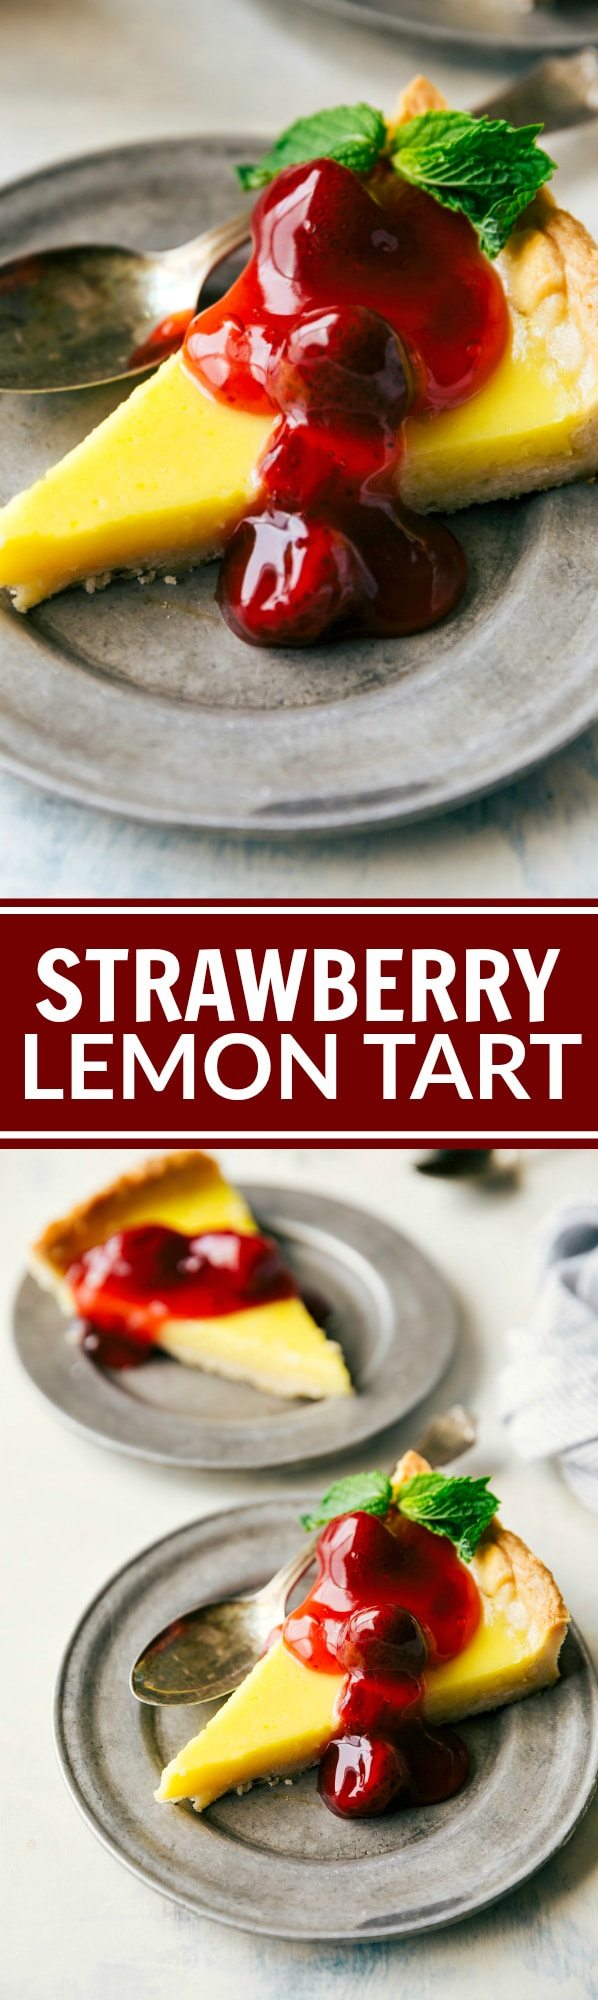 BLENDER STRAWBERRY TART! The best thick crust loaded with a custard-like filling and loaded with sweet strawberry pie filling. Recipe via chelseasmessyapron.com